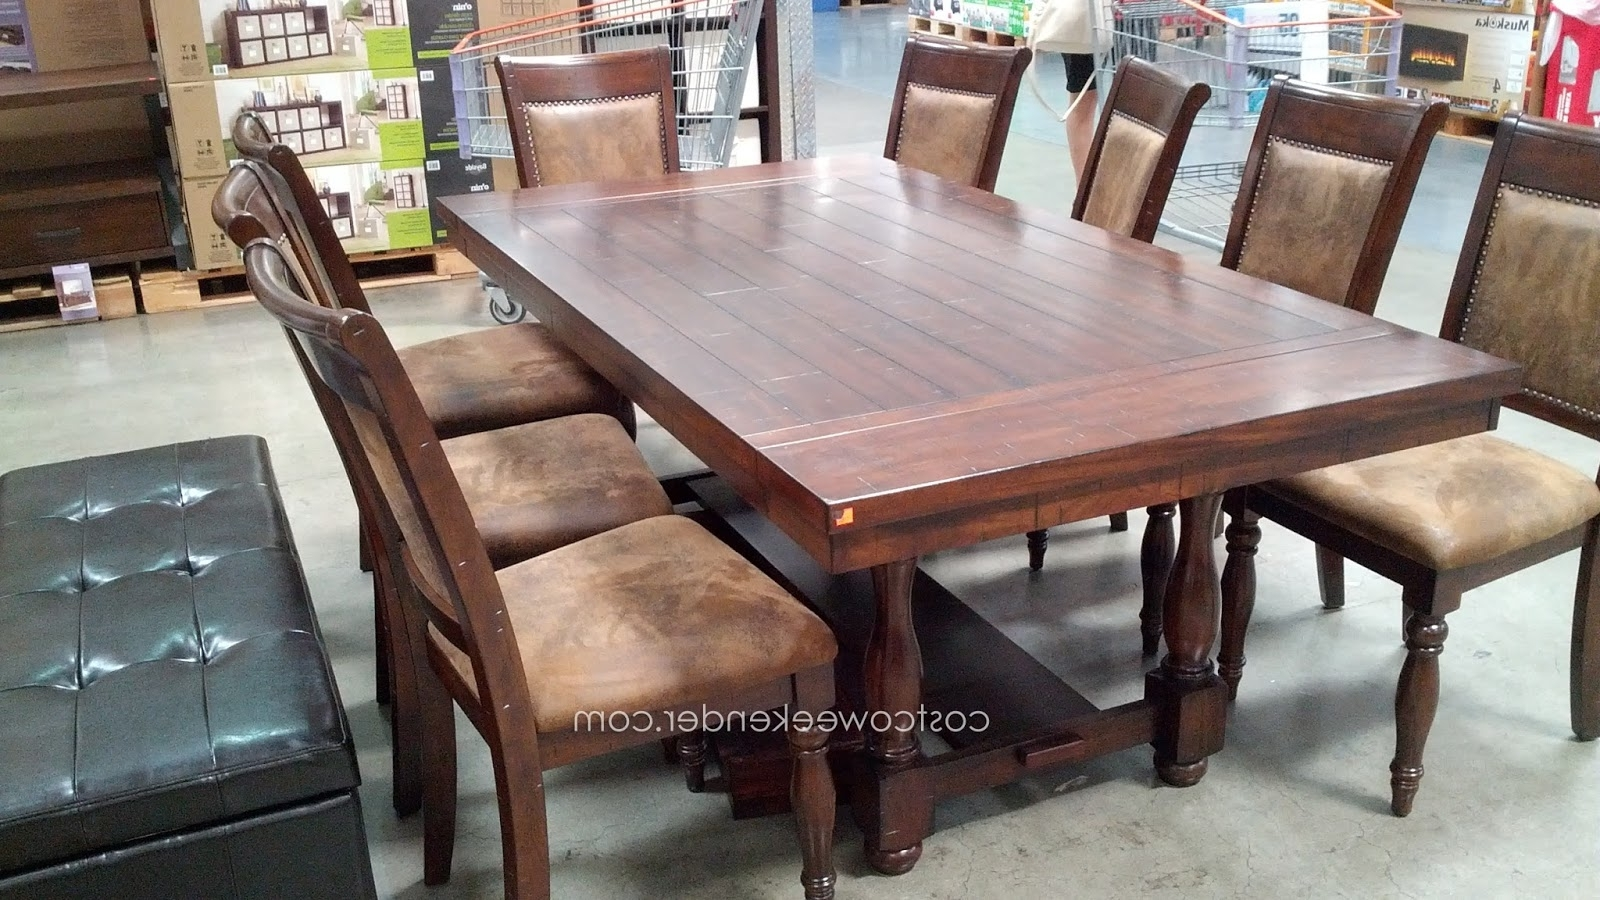 Rocco 9 Piece Extension Counter Sets for Most Popular 9 Piece Dining Room Table And Chairs - Dining Tables Ideas